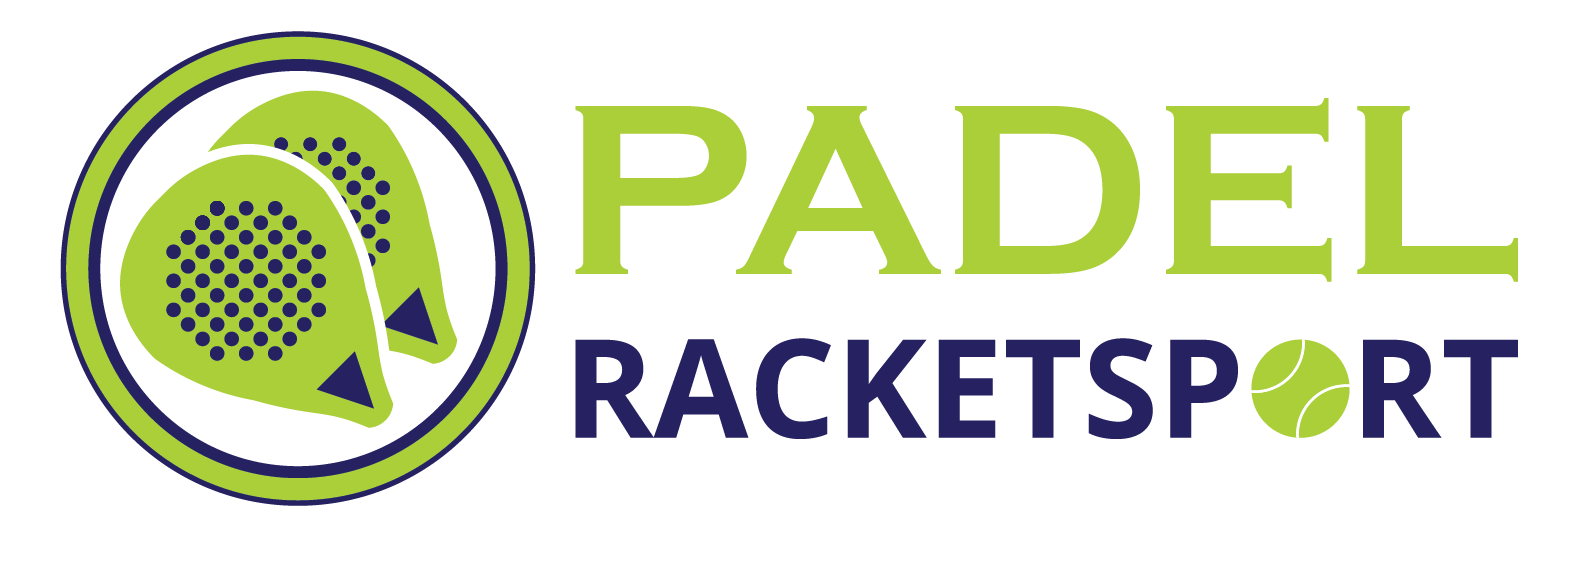 Padel Racketsport Logo